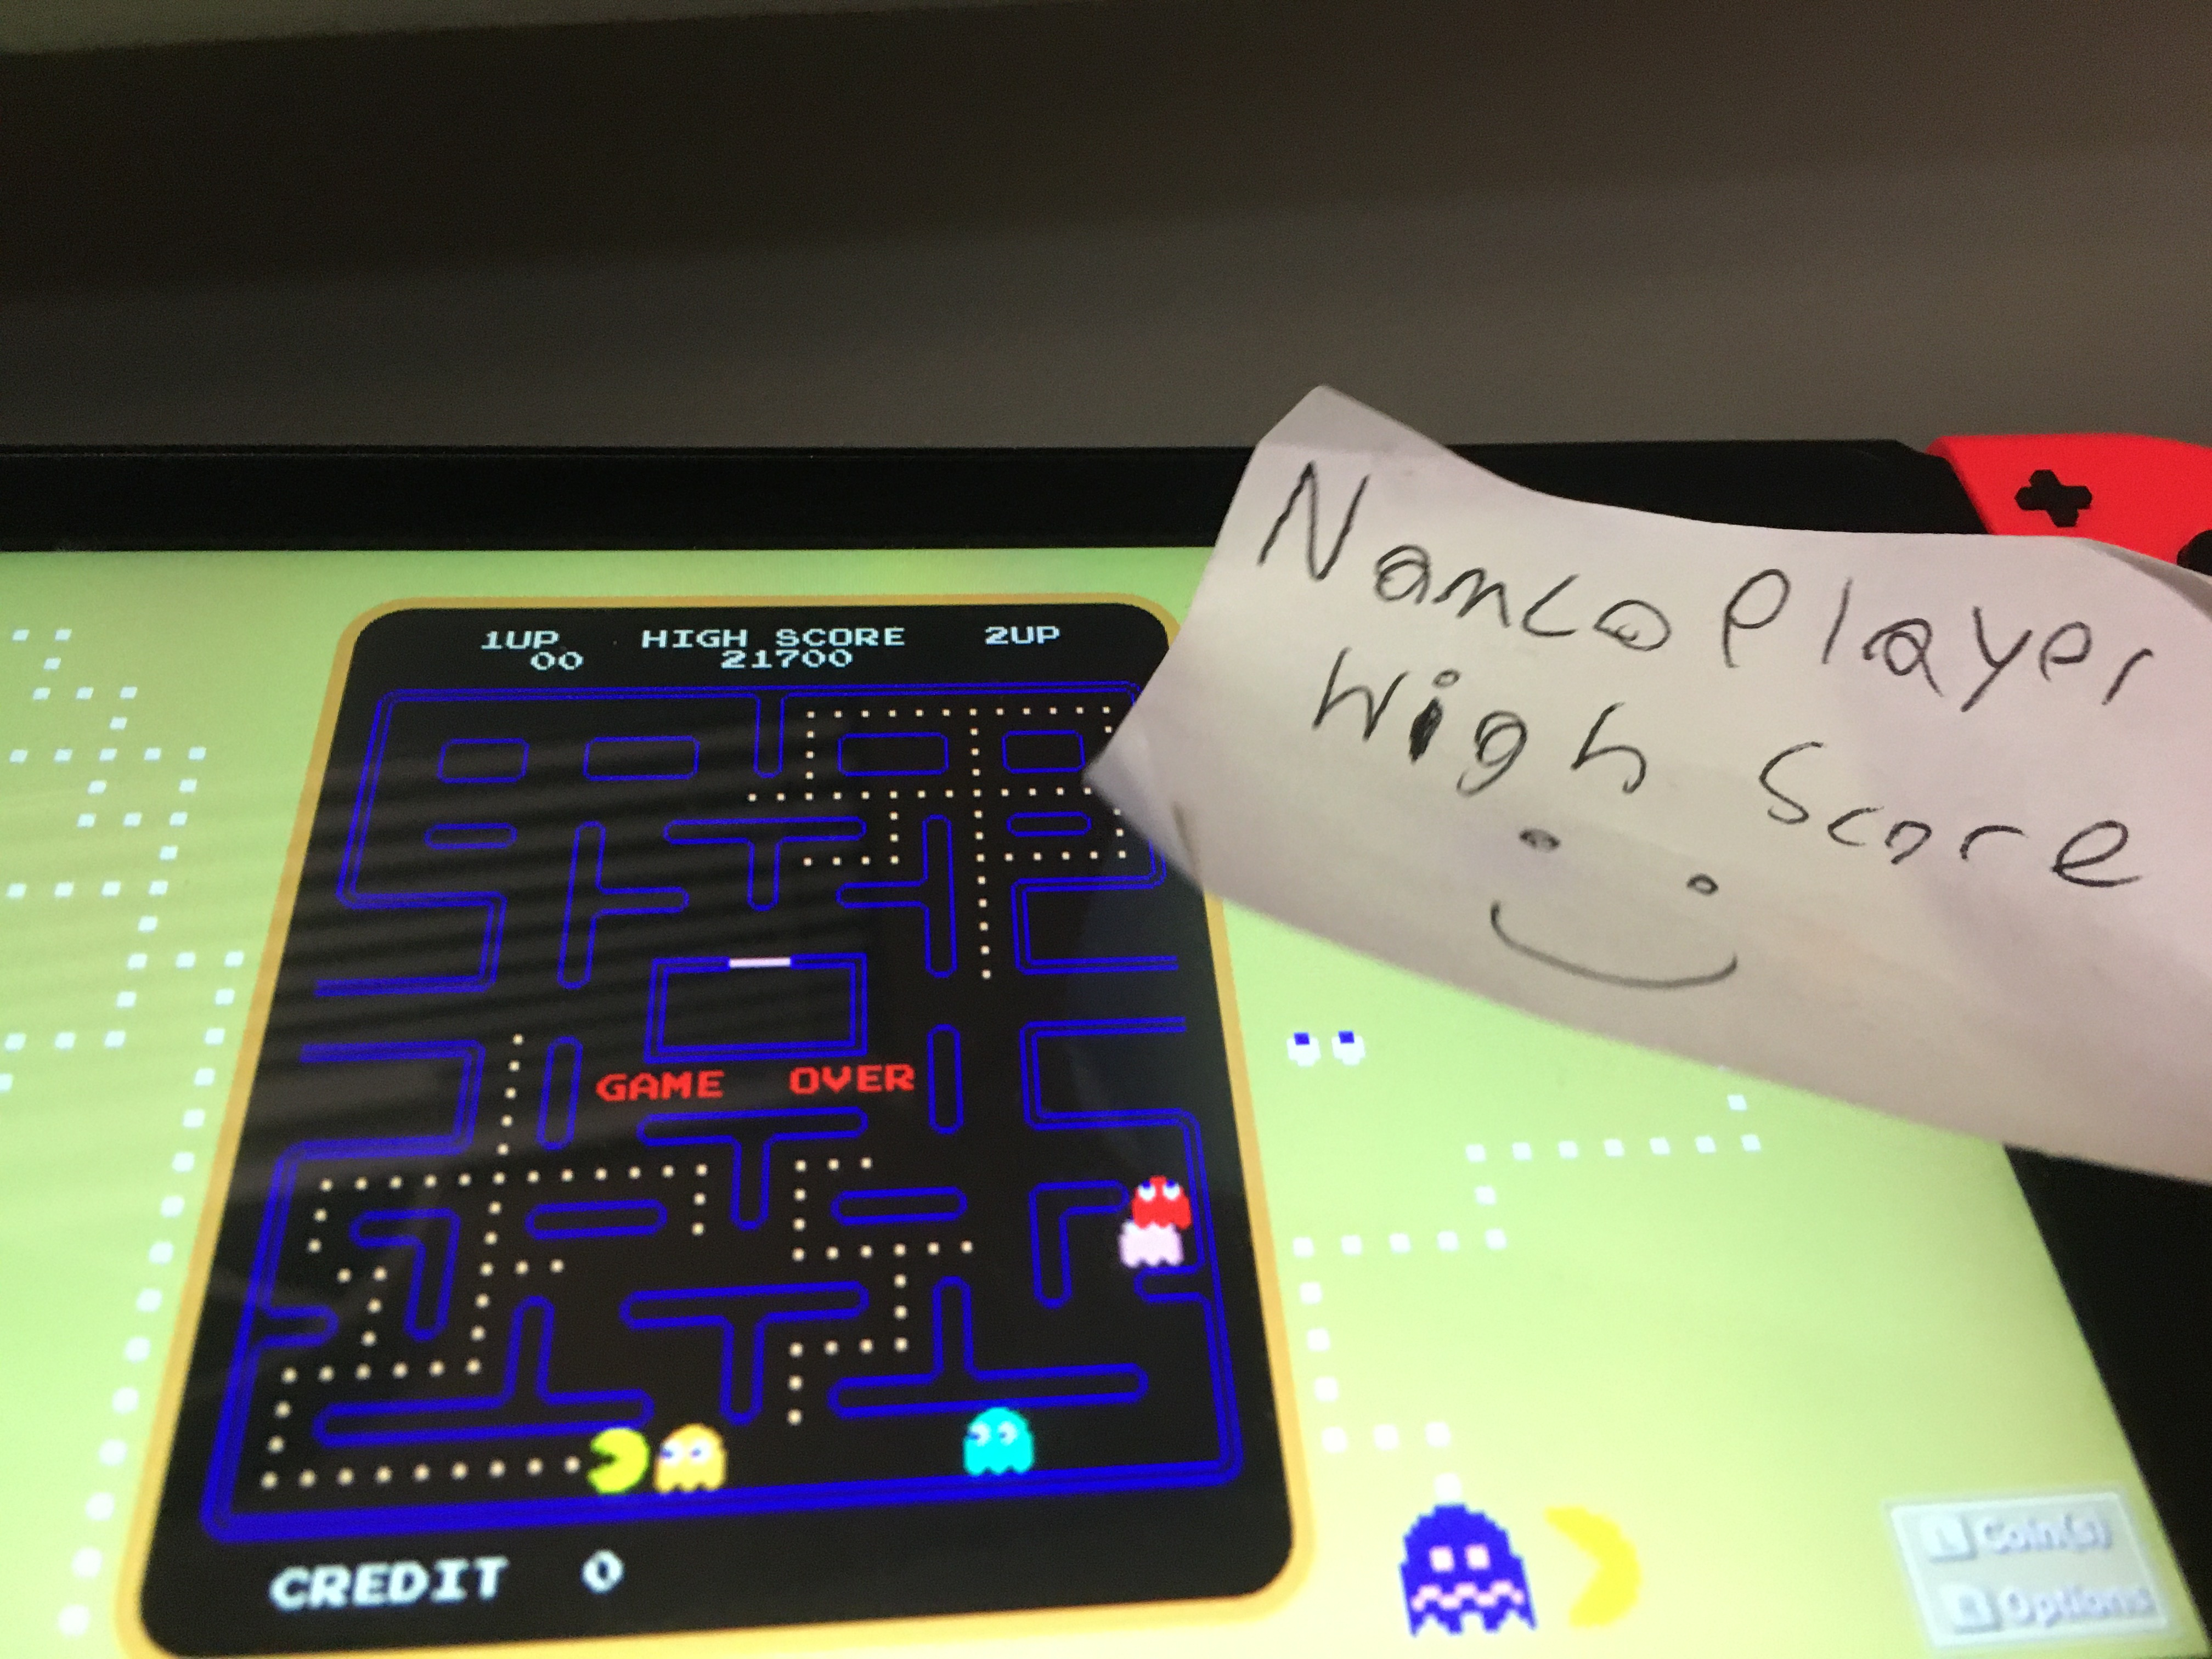 NamcoPlayer: Namco Museum: Pac-Man [Normal] (Nintendo Switch) 21,700 points on 2020-10-11 19:33:55